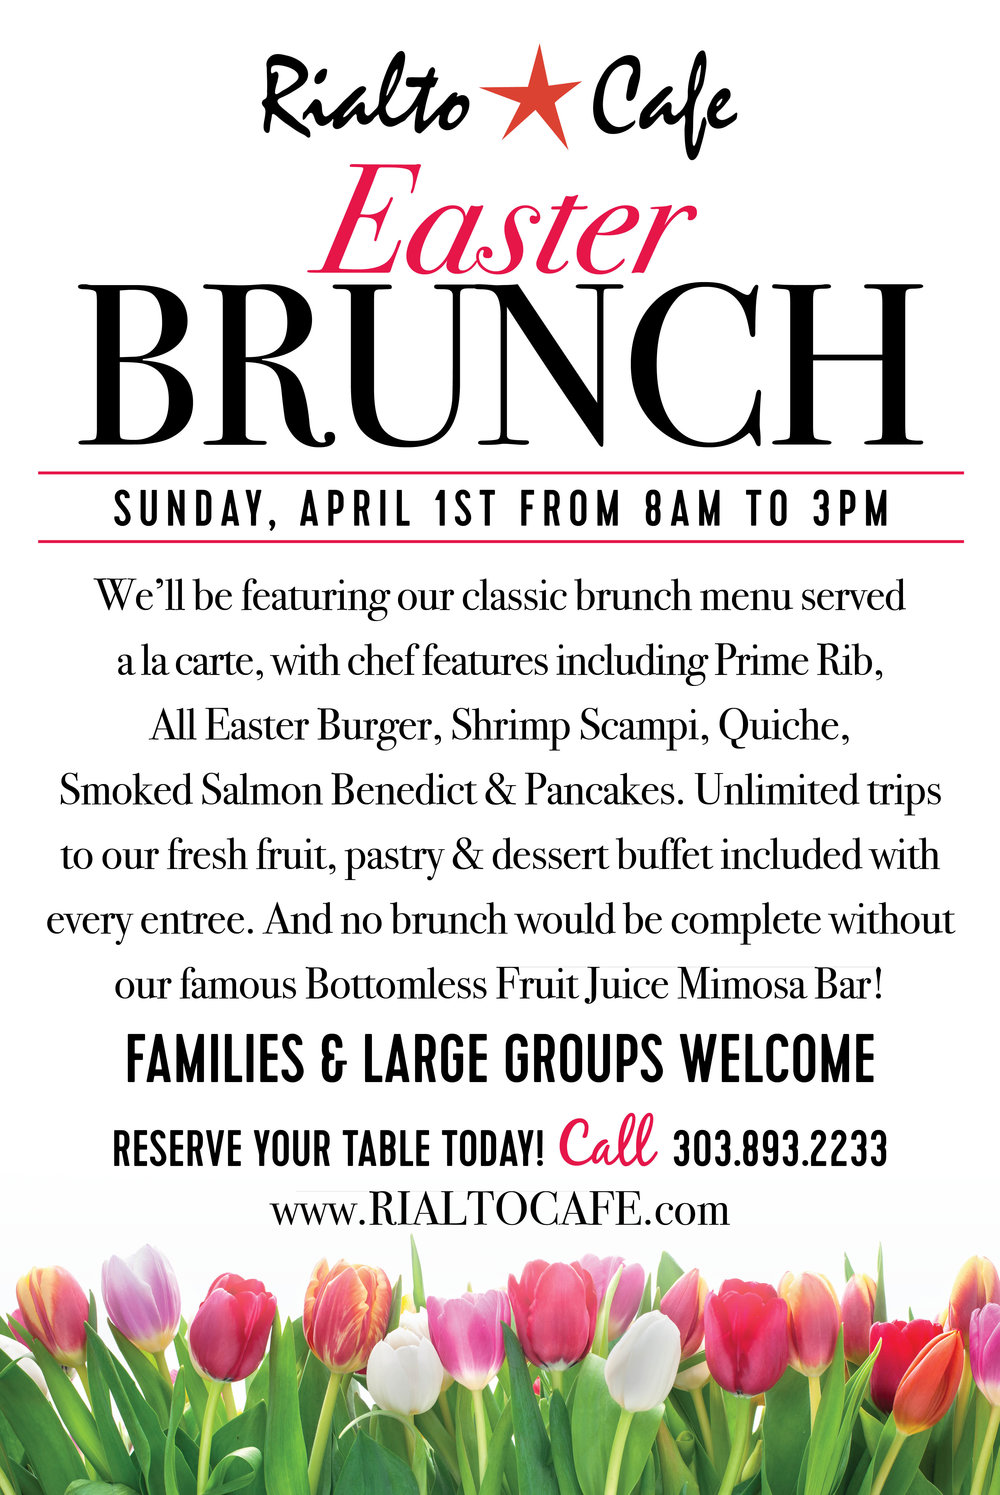 Join Us For Easter - Check out our menu below and make reservations by calling 303-893-2233.